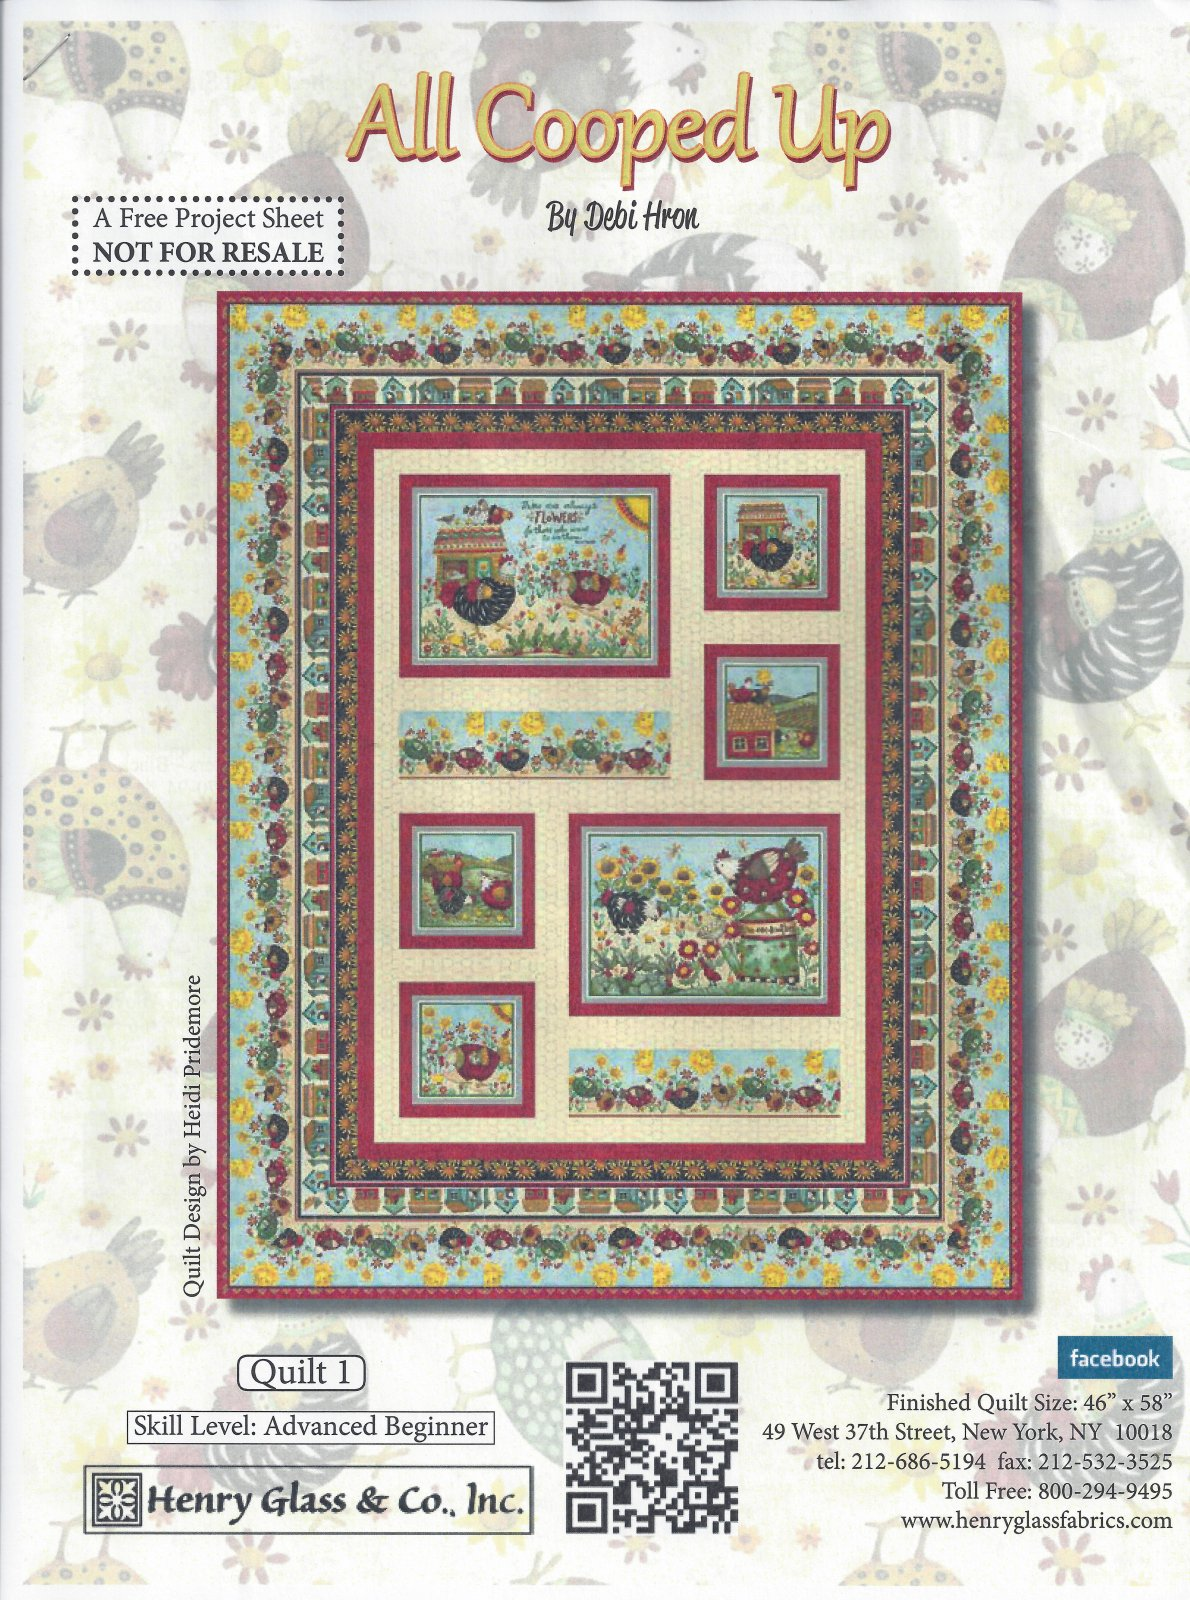 All Cooped Up - Debi Hron - Henry Glass & Co. Inc. - Size 46 X 58 - 100-8707